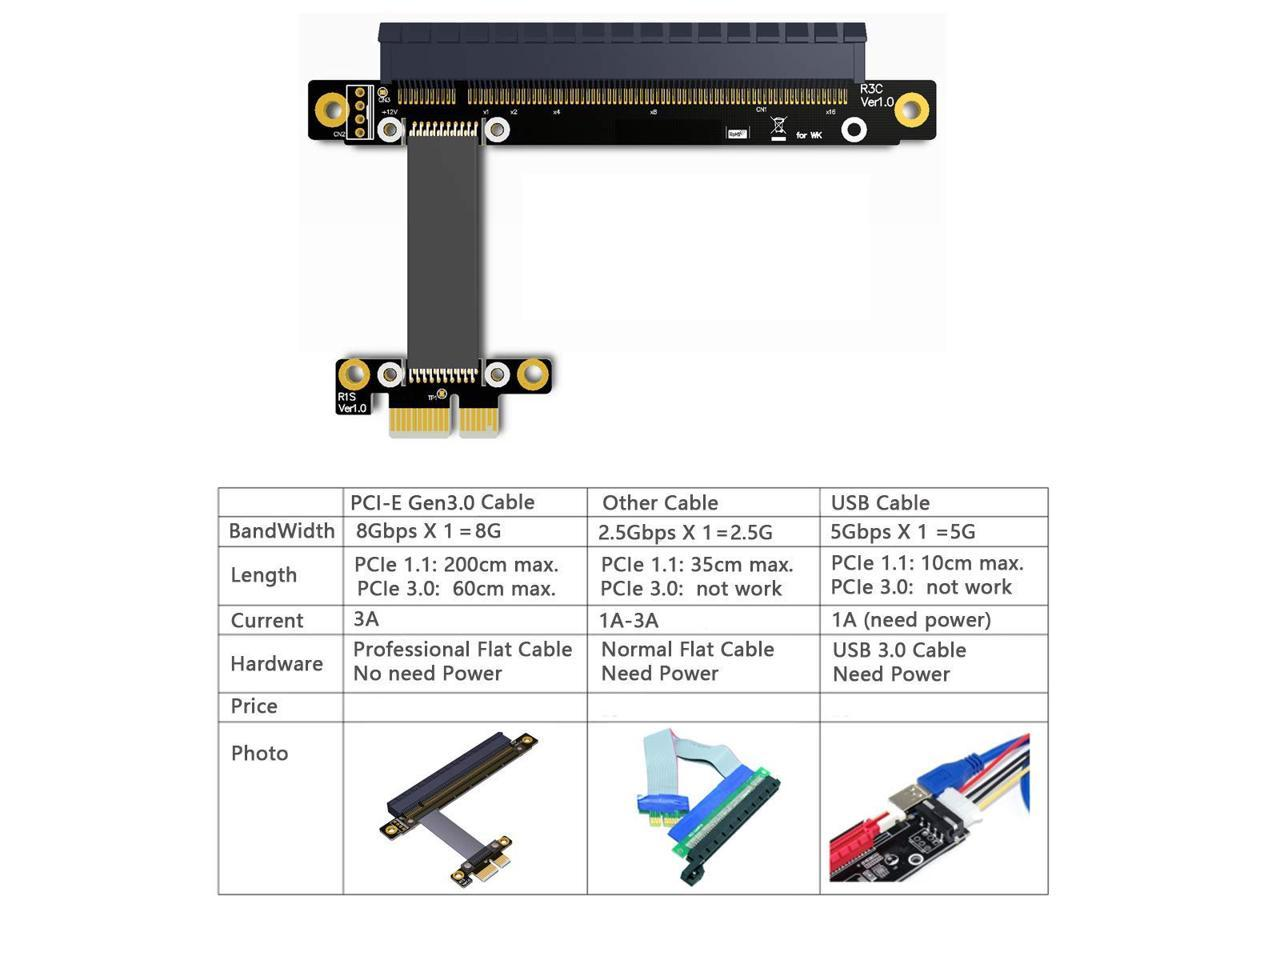 Occus PCI-E Gen3.0 16x to 16x Riser Cable 10cm 20cm 30cm 40cm 50cm PCI-Express PCI-E X16 Extender Down Right Angled Elbow Design Cable Length: 20cm, Color: Straight